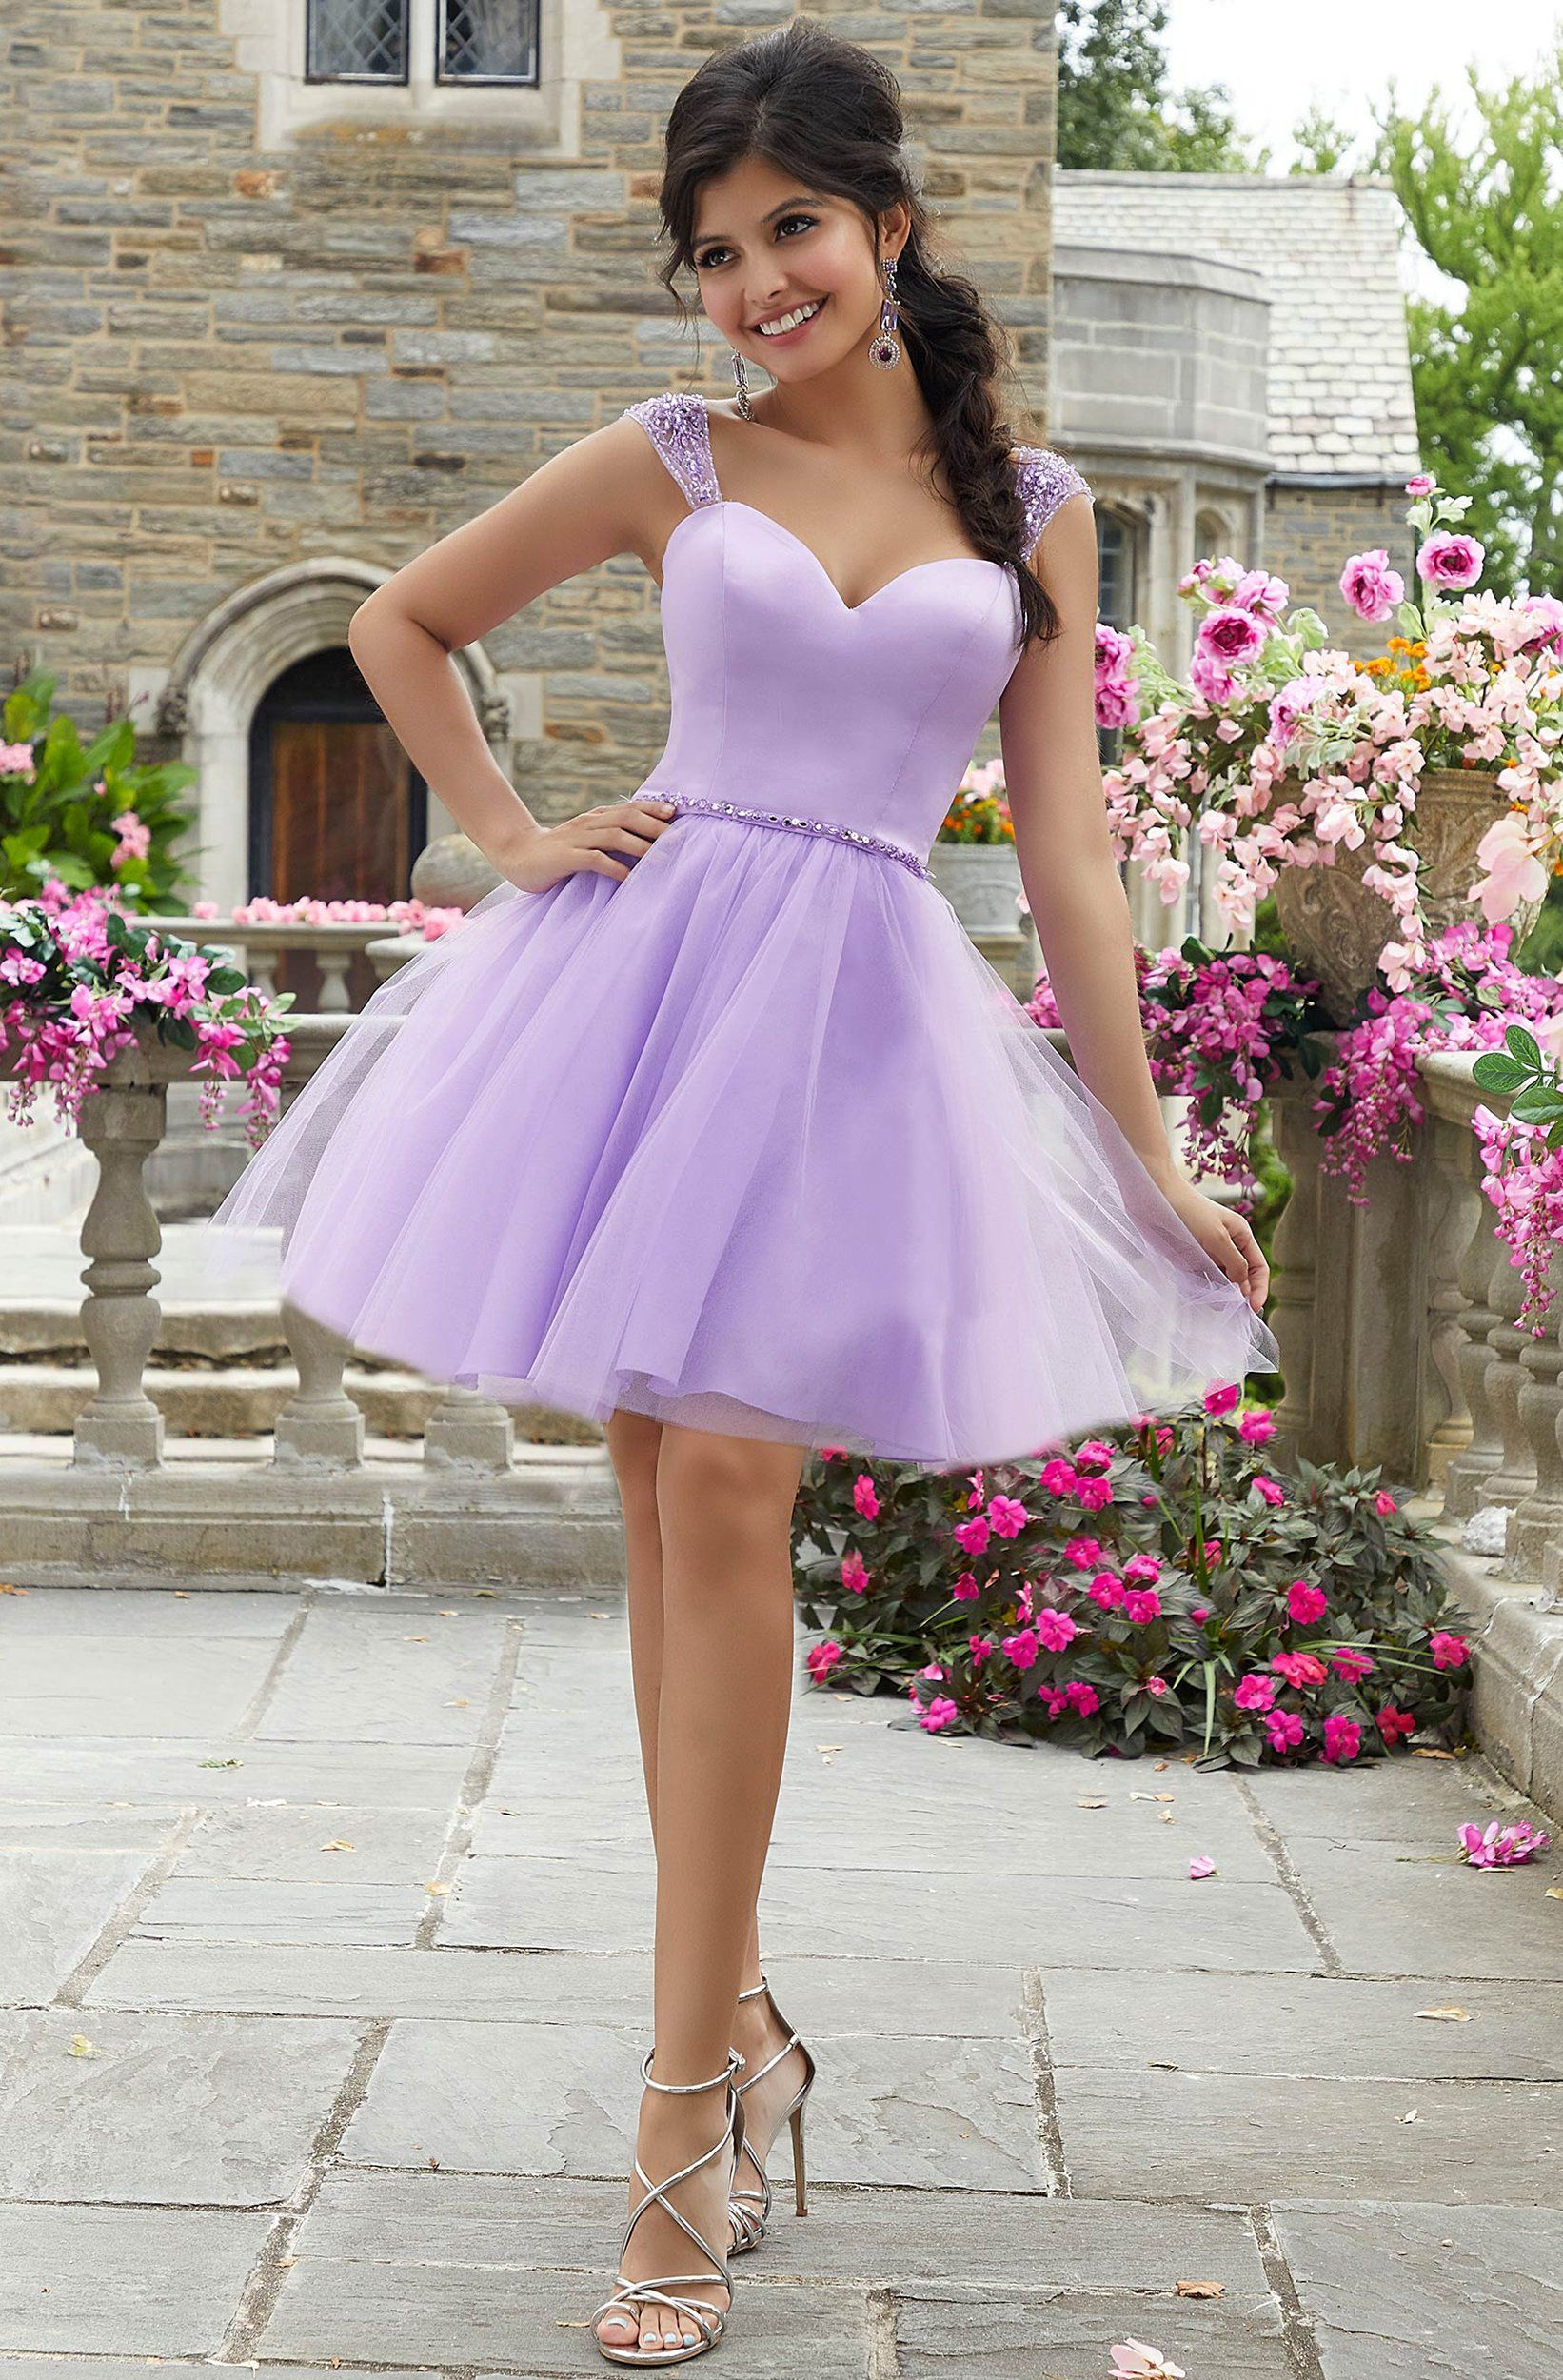 Mori Lee 9541 Beaded Satin And Tulle Sweetheart Neck Party Dress In 2021 Quince Dresses Purple Short Dress Quinceanera Dama Dresses [ 2500 x 1642 Pixel ]